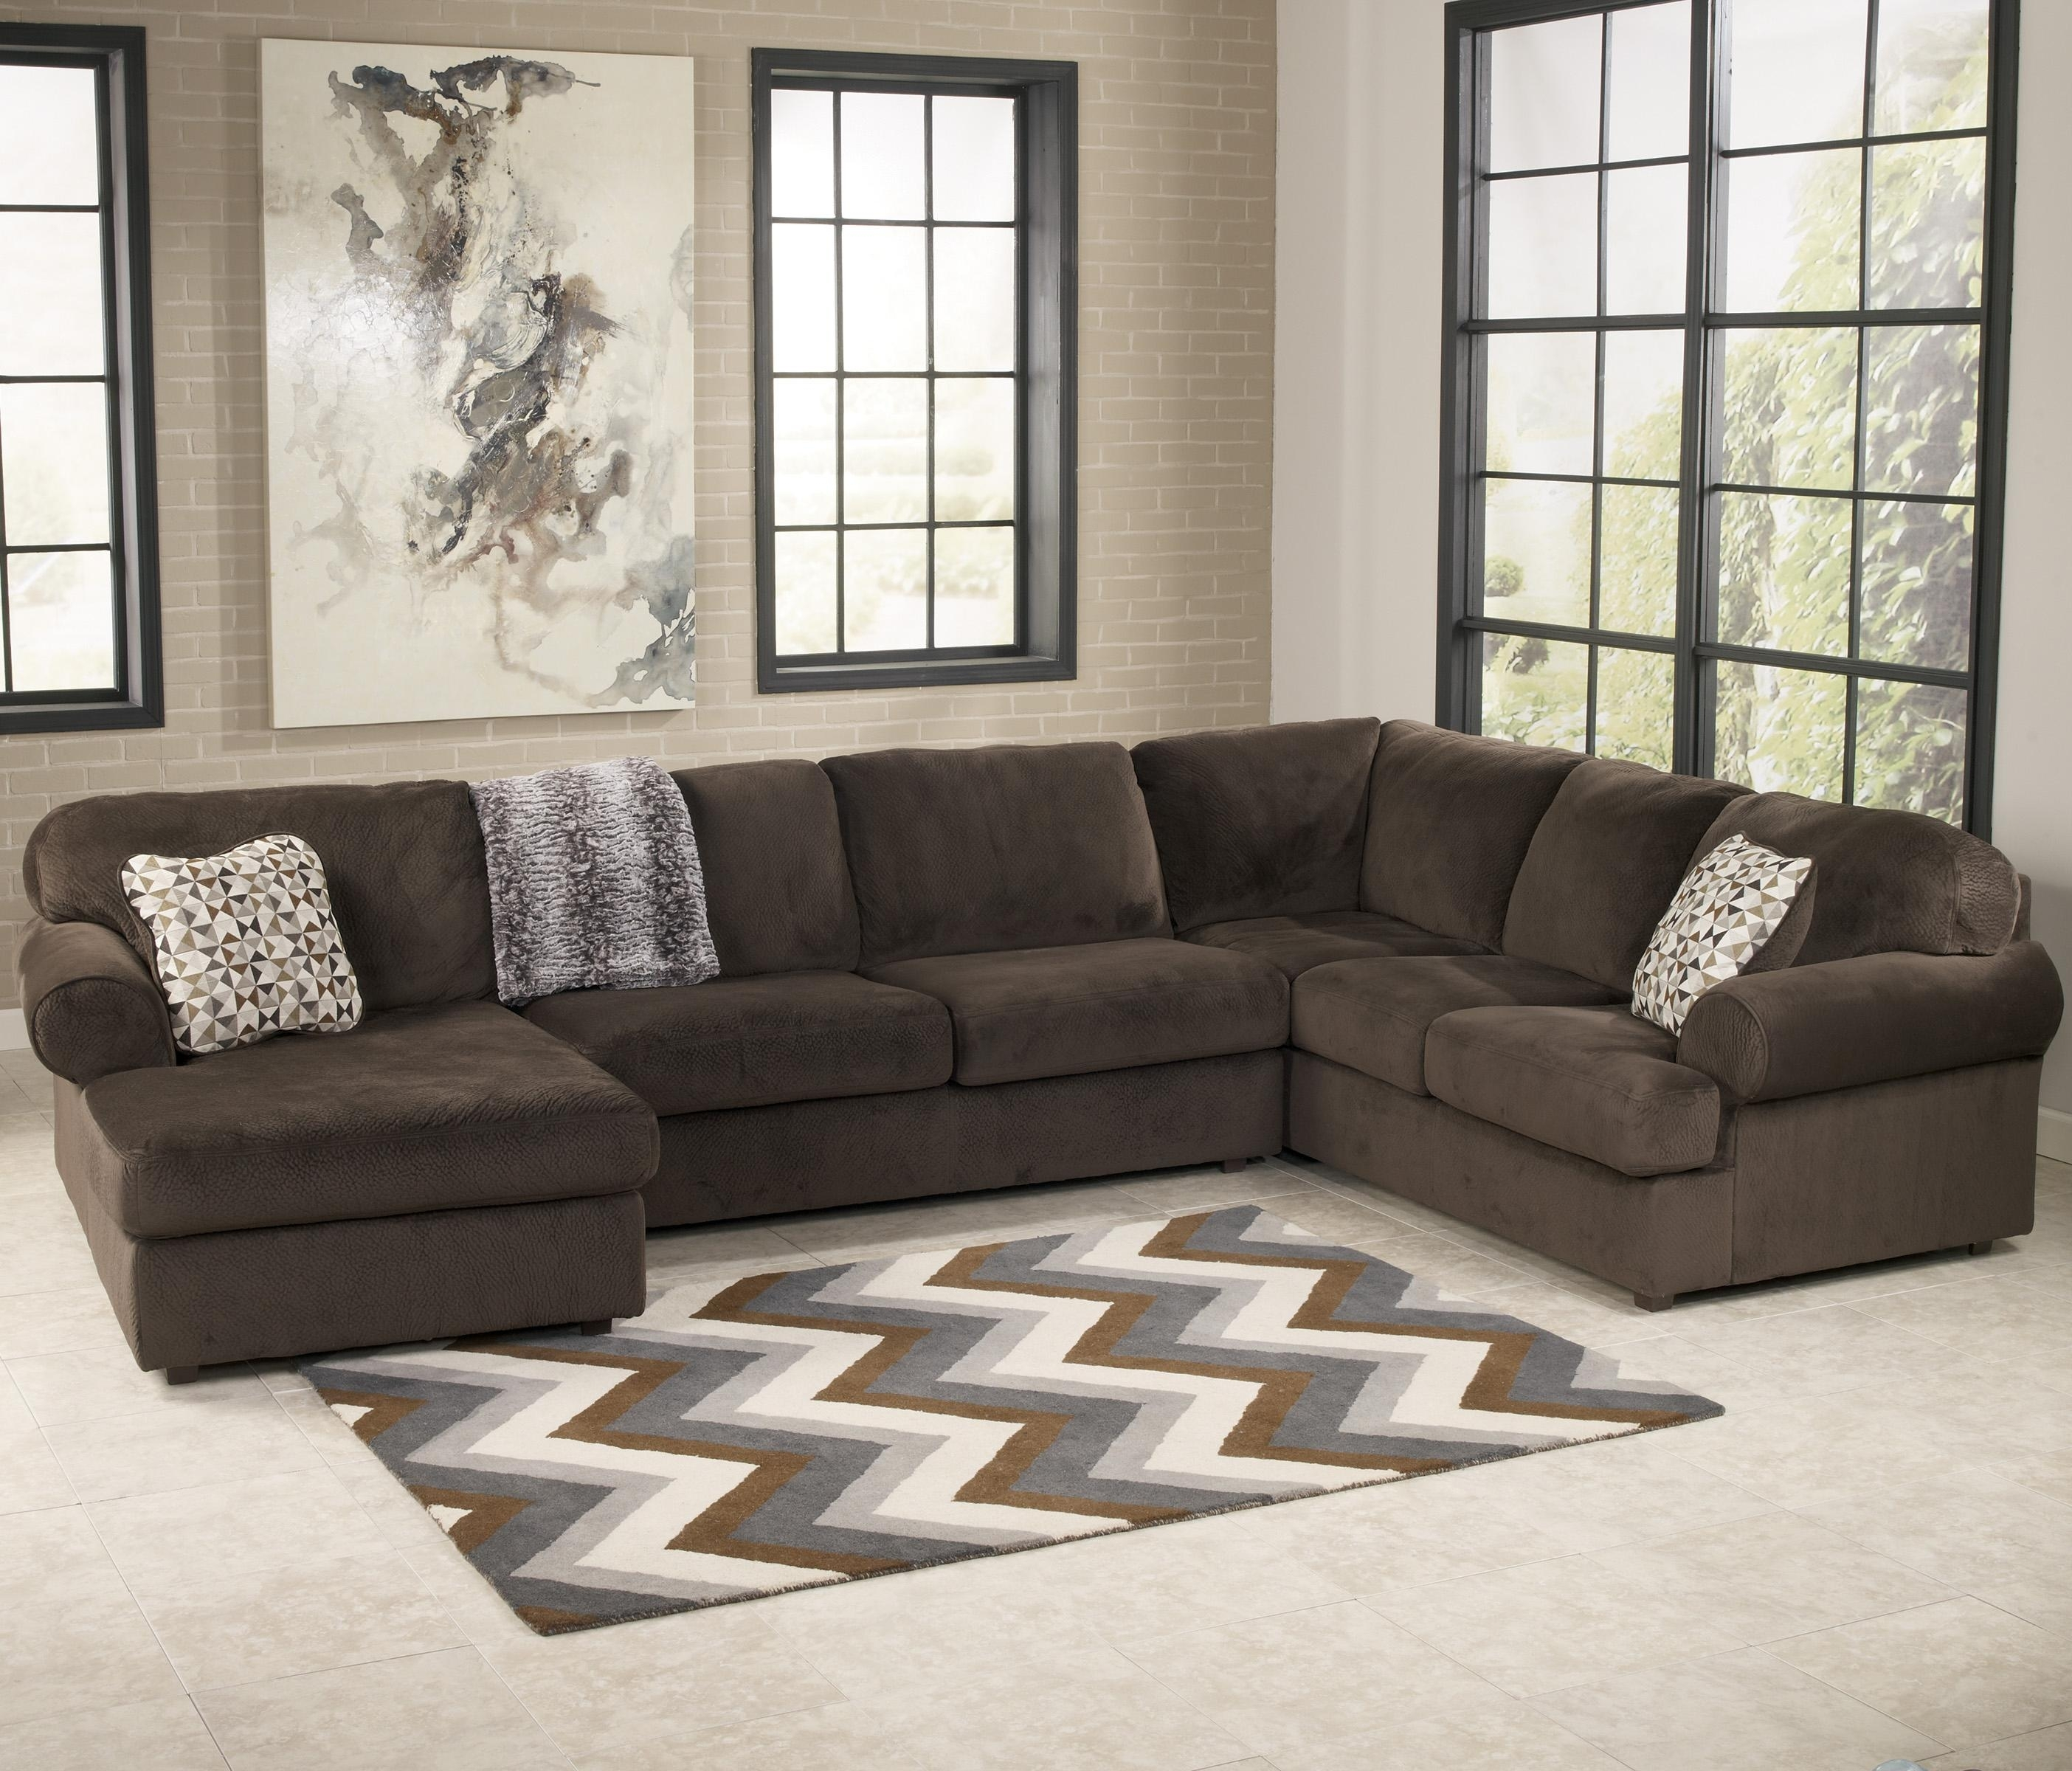 Furniture: Sectional Sofa Nj | Cheap Couches Nj | Mealys Furniture regarding Gordon 3 Piece Sectionals With Raf Chaise (Image 11 of 30)